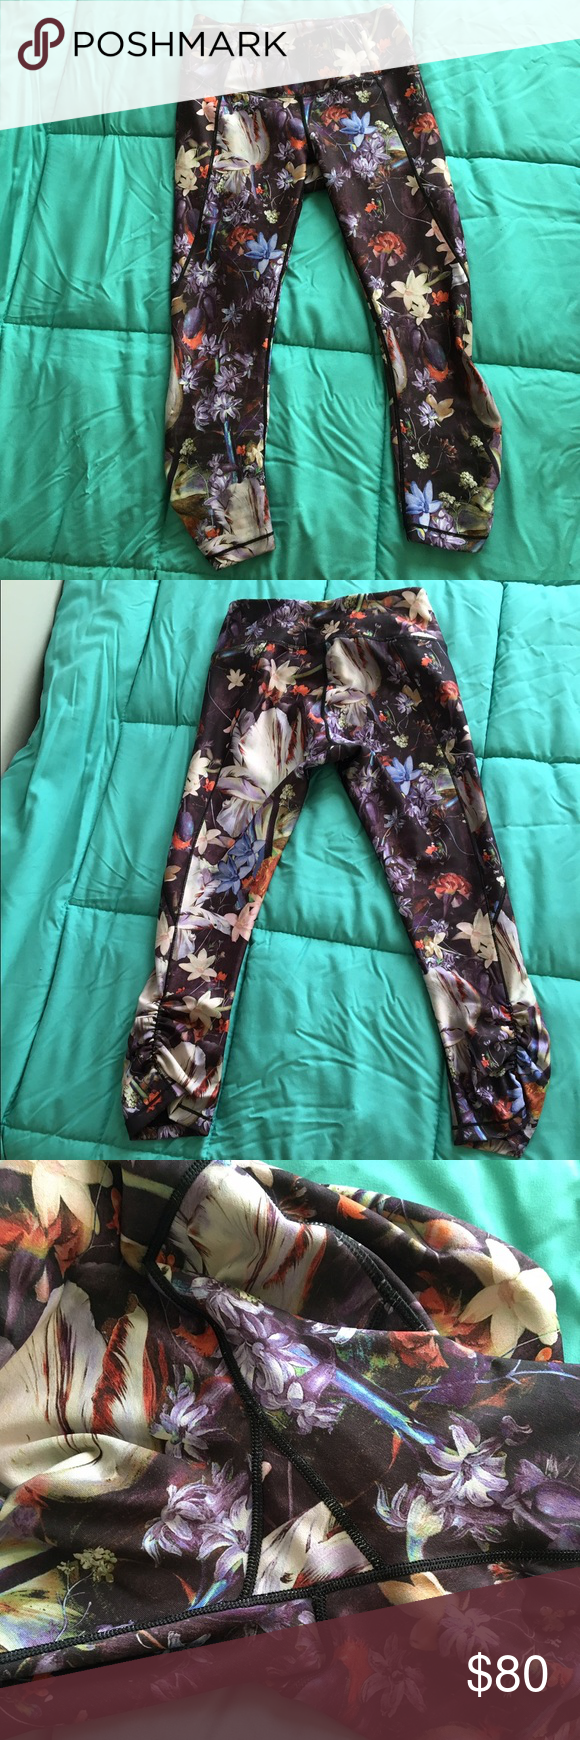 Calia by Carrie Underwood Capris Worn once! Completely sold out!!! Rare beautiful Capri'S. No flaws to note. Free of holes, snags, pills, or stains! Look new! Only selling because these aren't getting the love and attention they deserve. I tend to favorite my solids over my prints so these need a more loving home!   Size small. Will best fit up to a small 6.  Be sure to check out the rest of my closet for more amazing items! :)   Tags: lululemon, Nike, calia by Carrie underwood CALIA by…